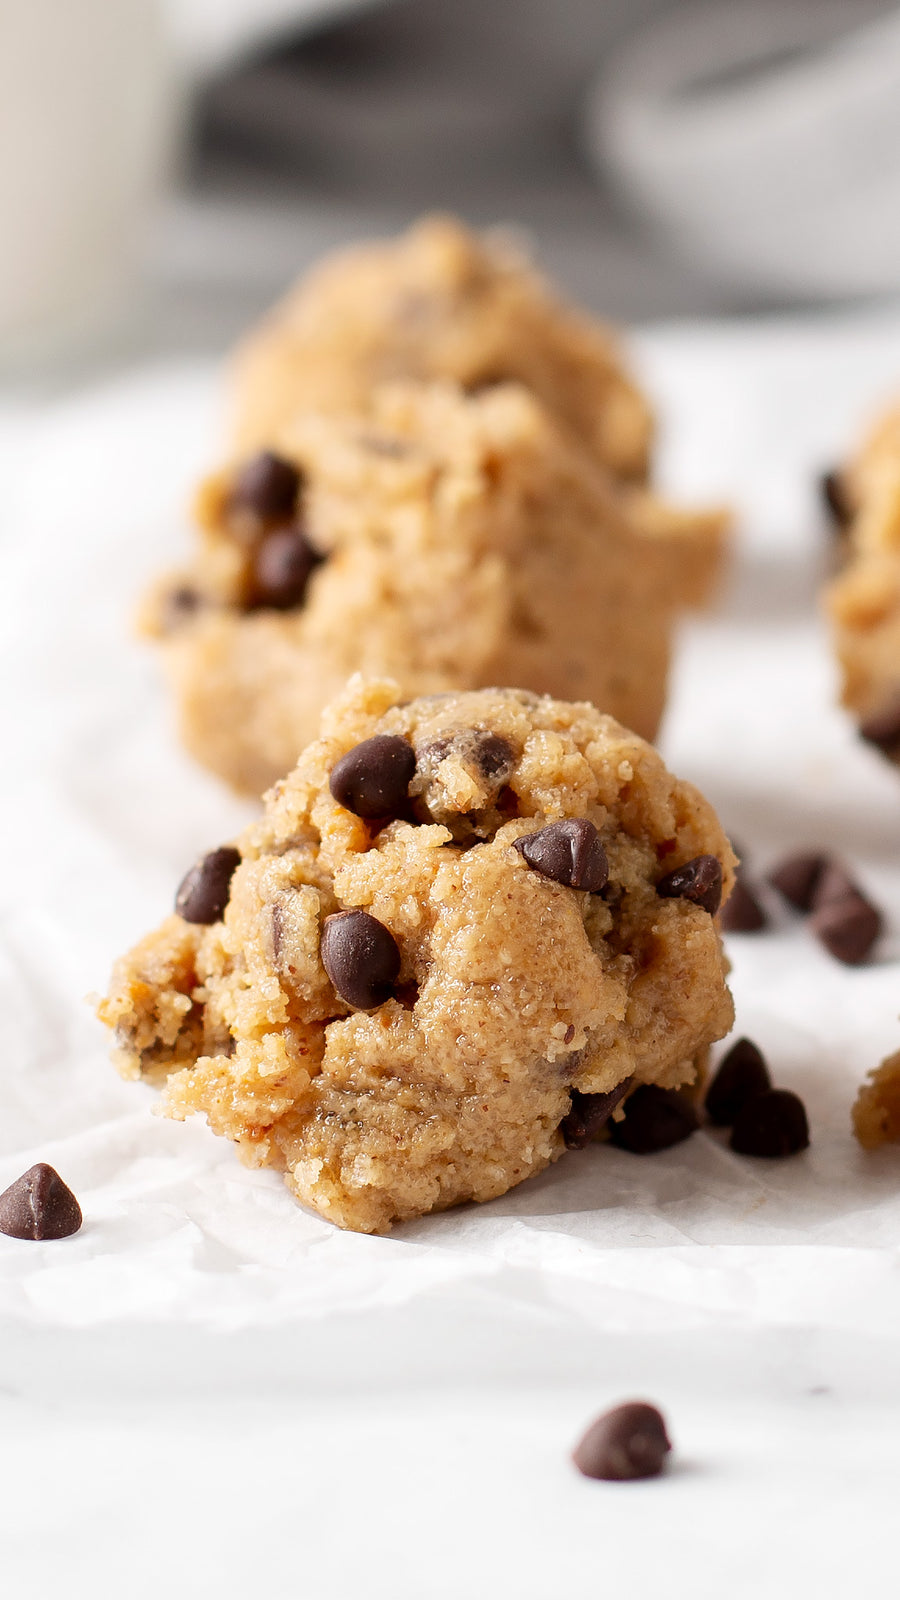 CLASSIC CHOCOLATE CHIP EDIBLE COOKIE DOUGH